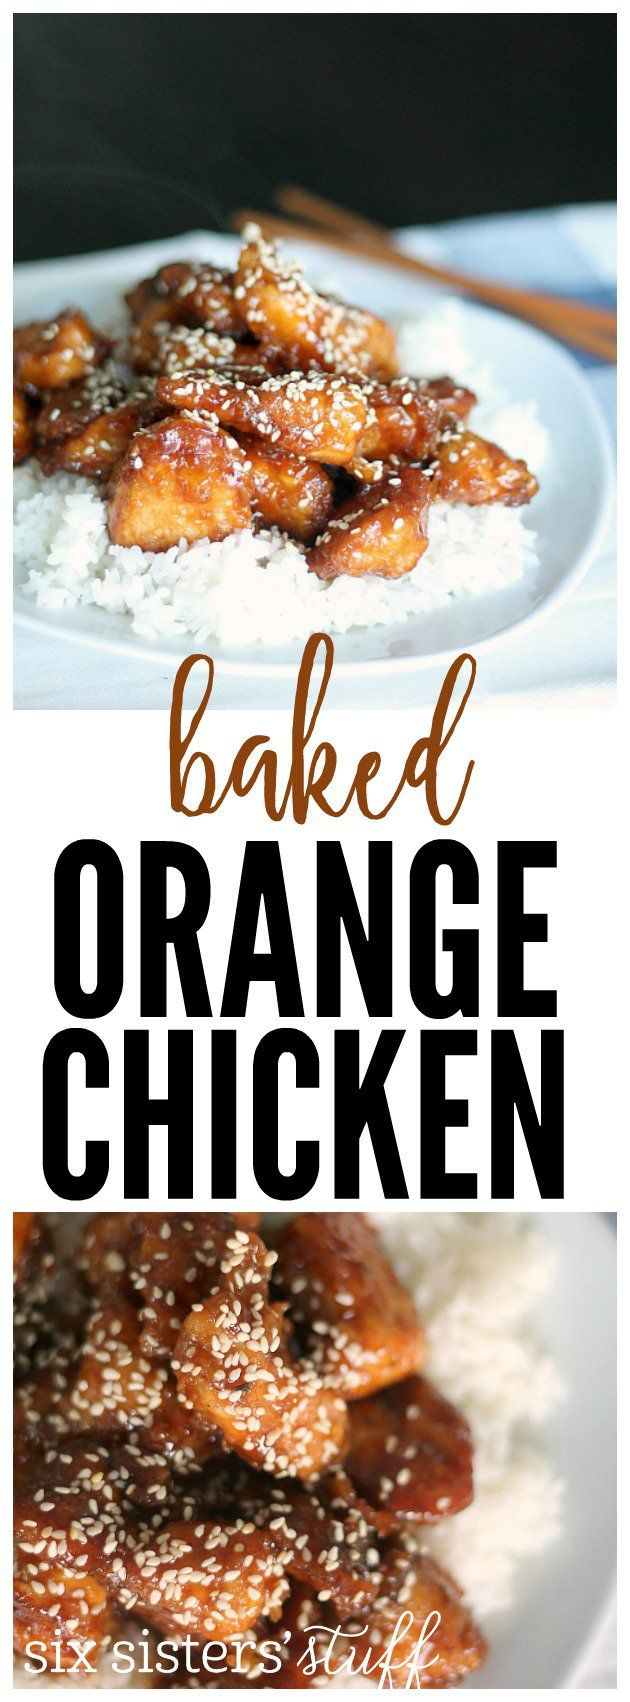 This Baked Orange Chicken from SixSistersStuff.com is AMAZING!